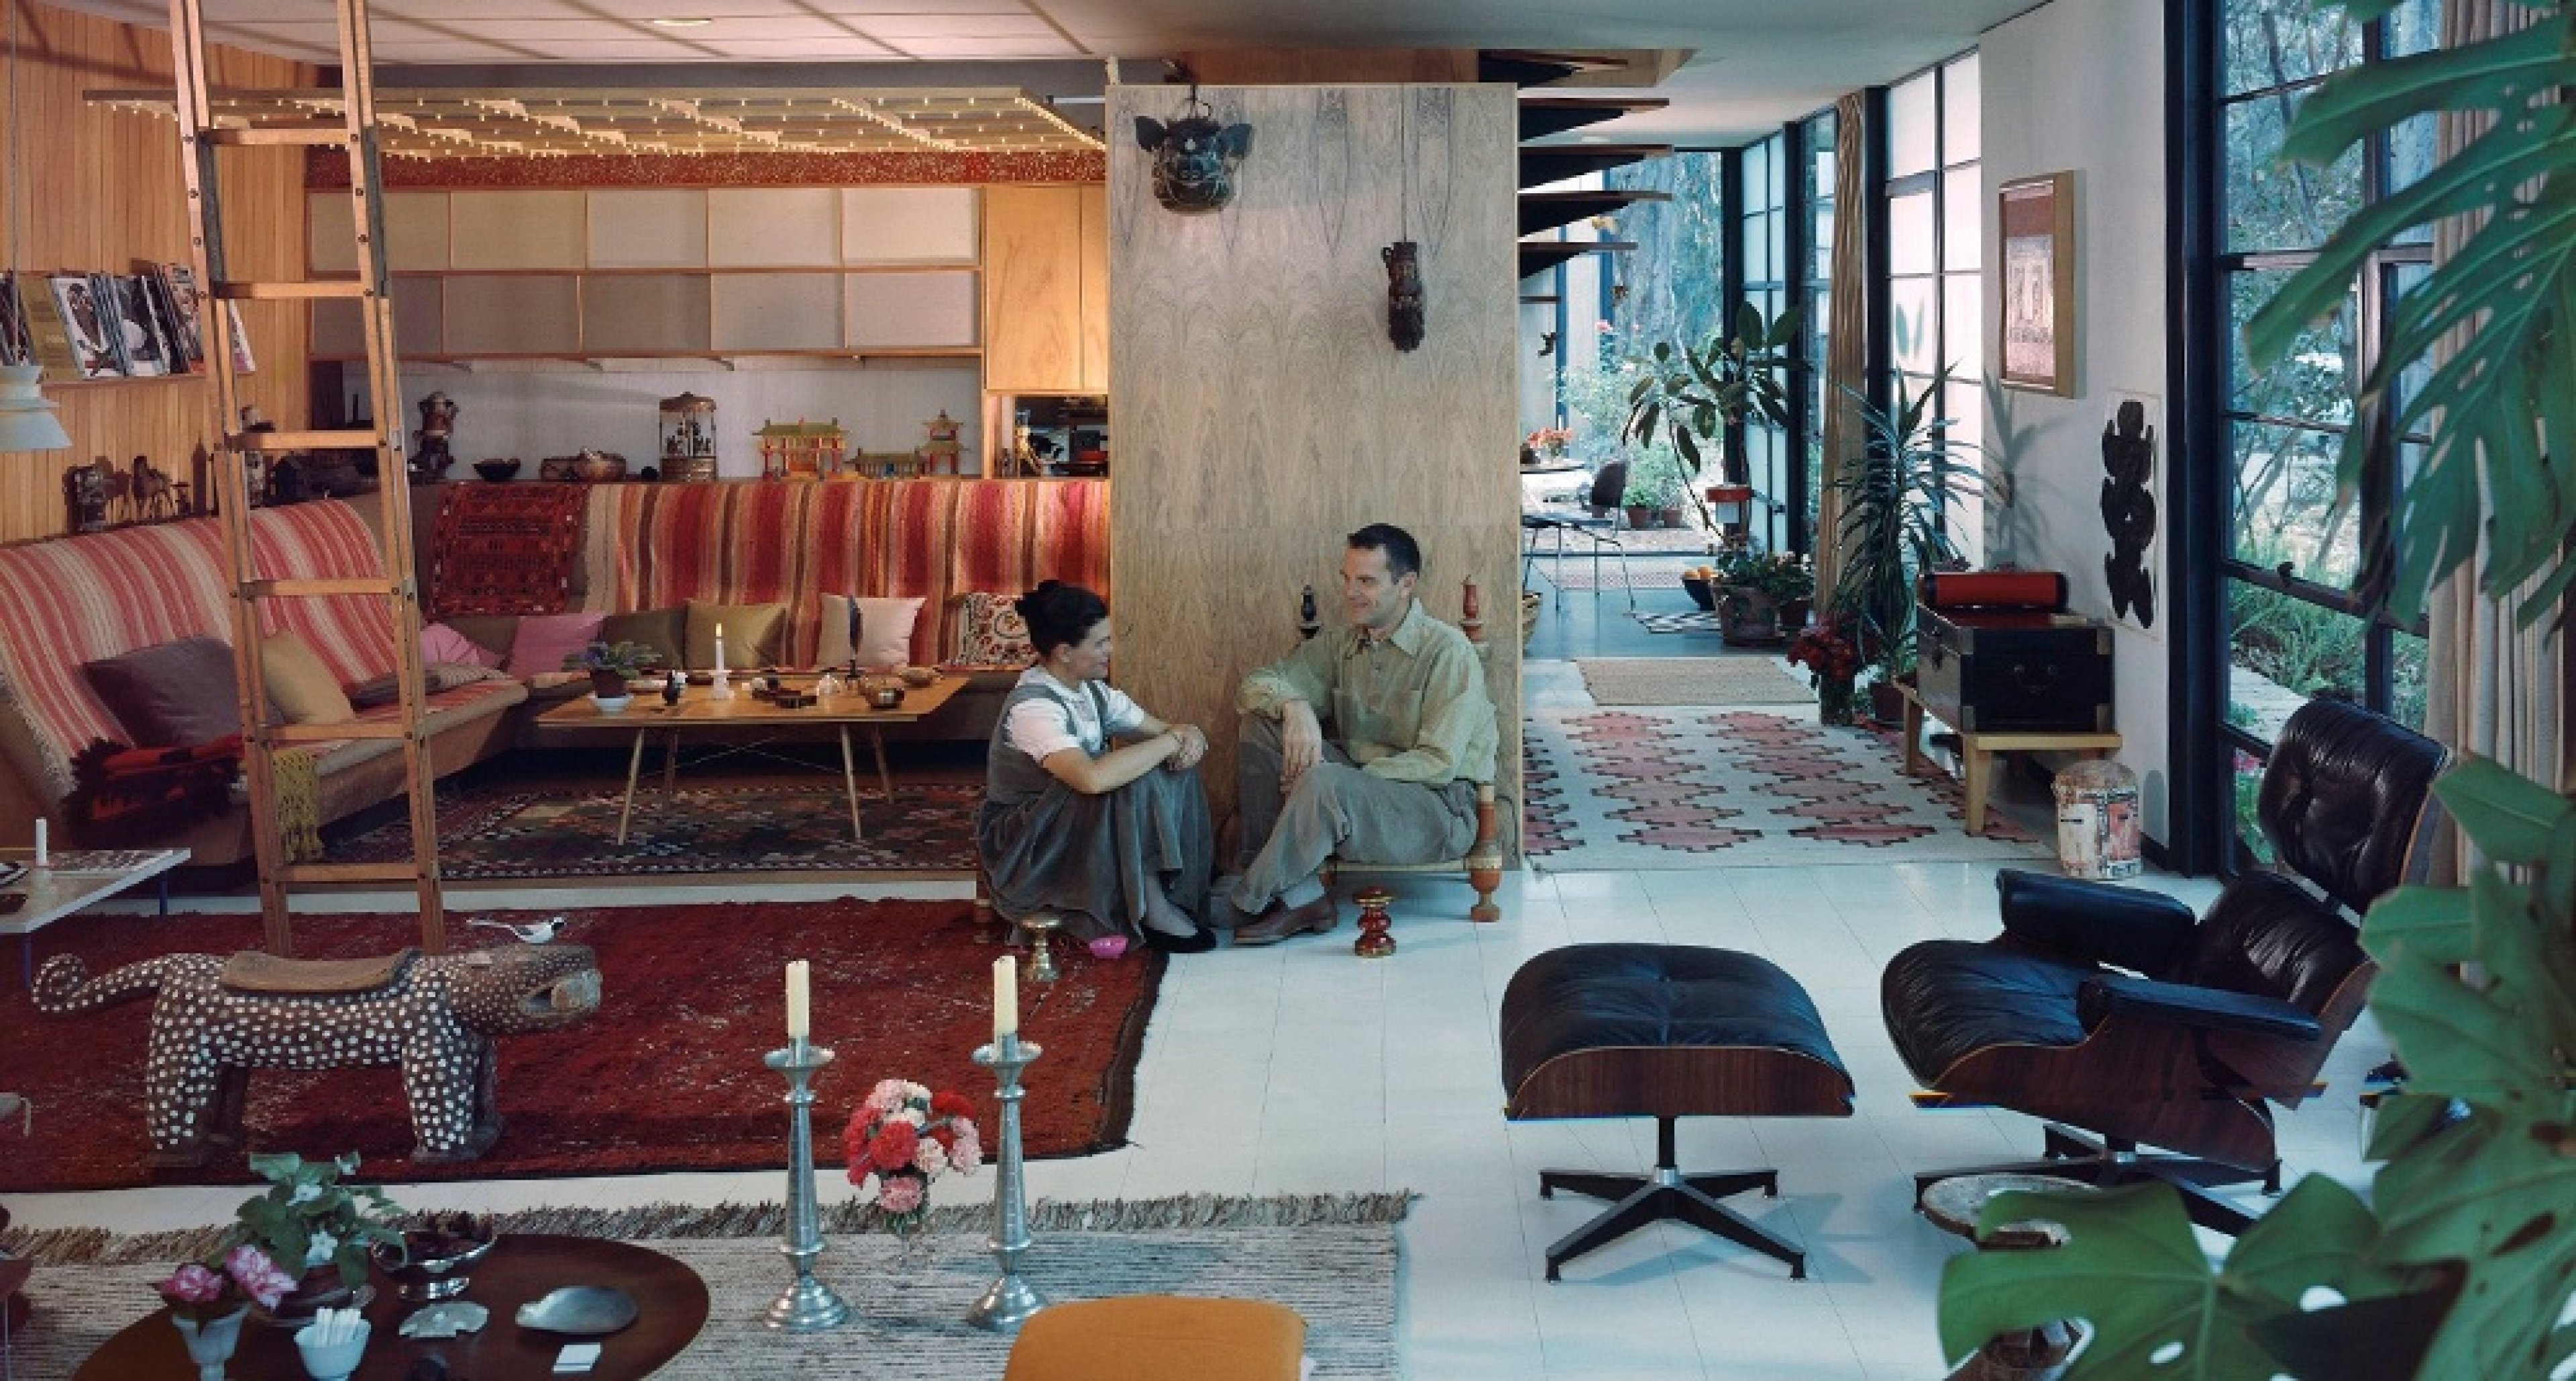 Charles and Ray im Wohnzimmer des Eames House, 1958 © J. Paul Getty Trust, Los Angeles, Foto: Julius Shulman